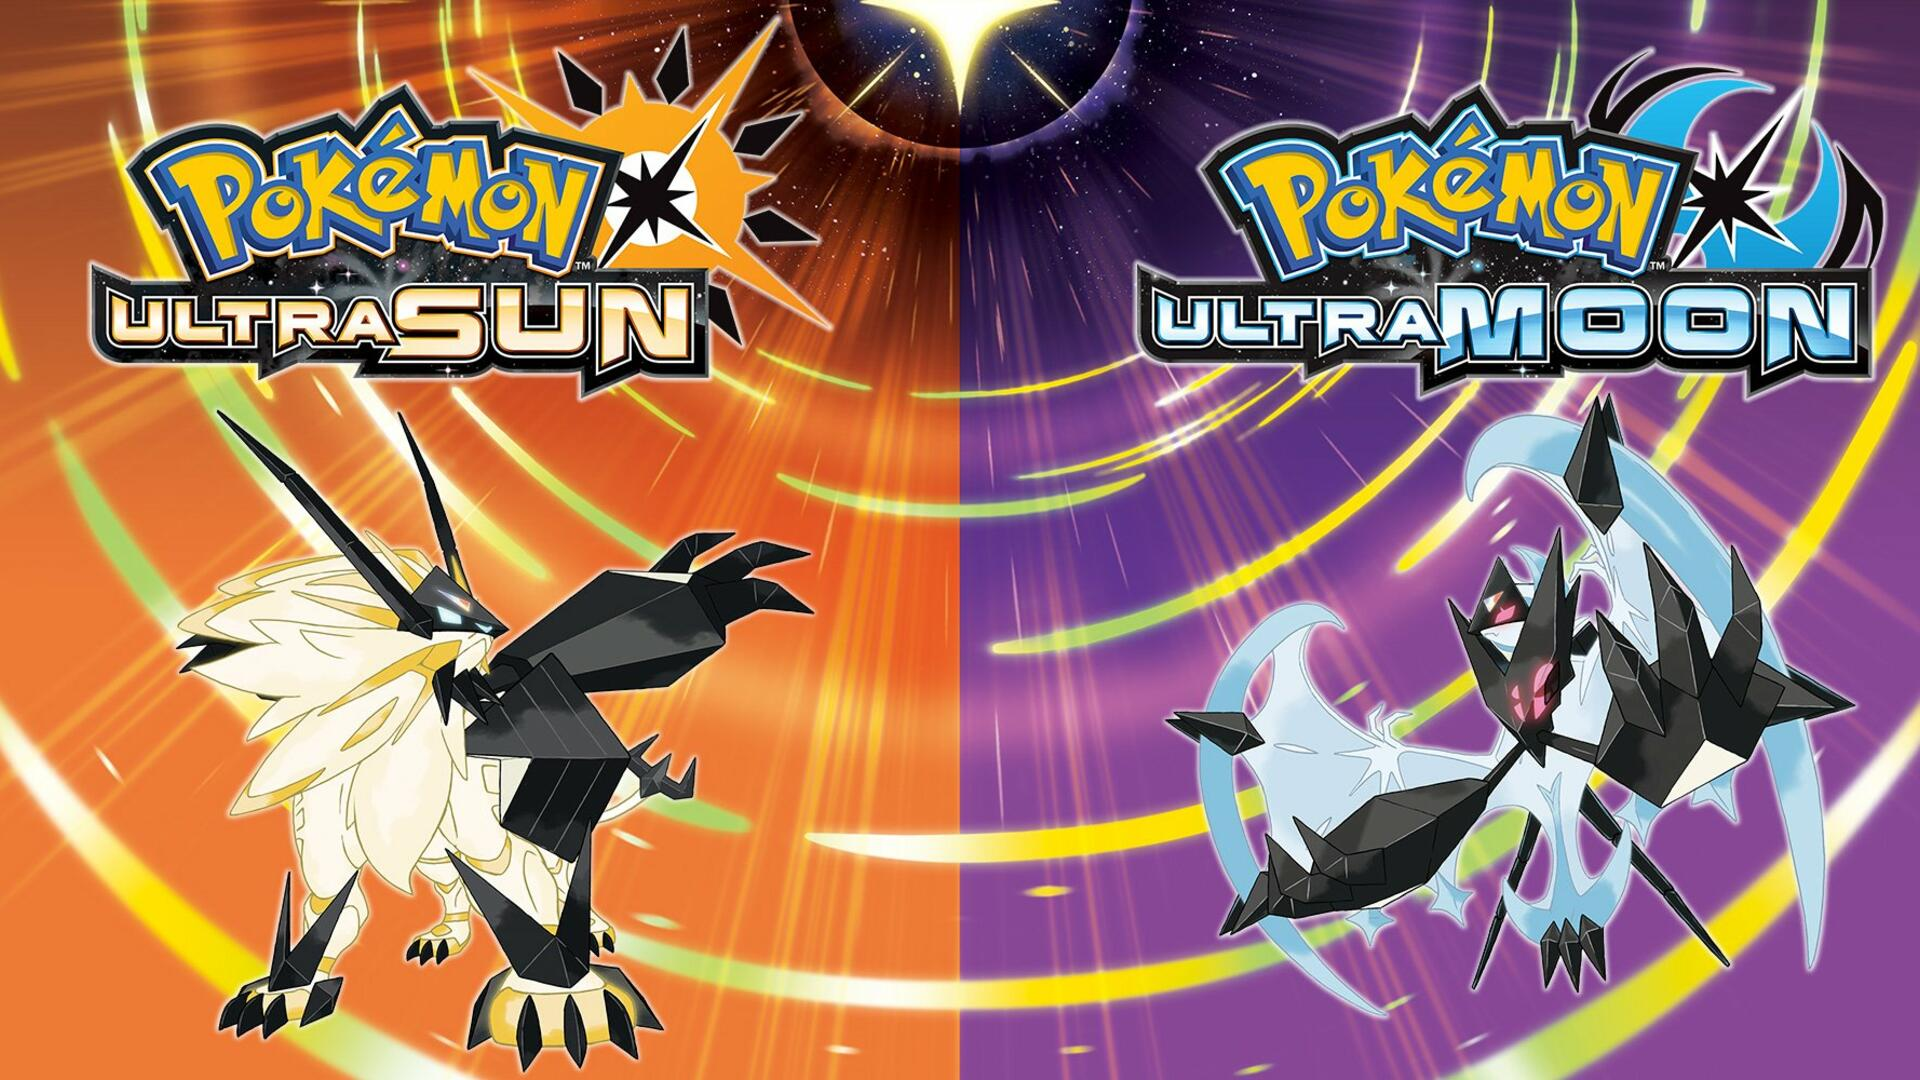 Pokemon Ultra Sun and Ultra Moon - Release Date, New Trailers, Price, Special Editions, New Monsters, New Content - Everything We Know